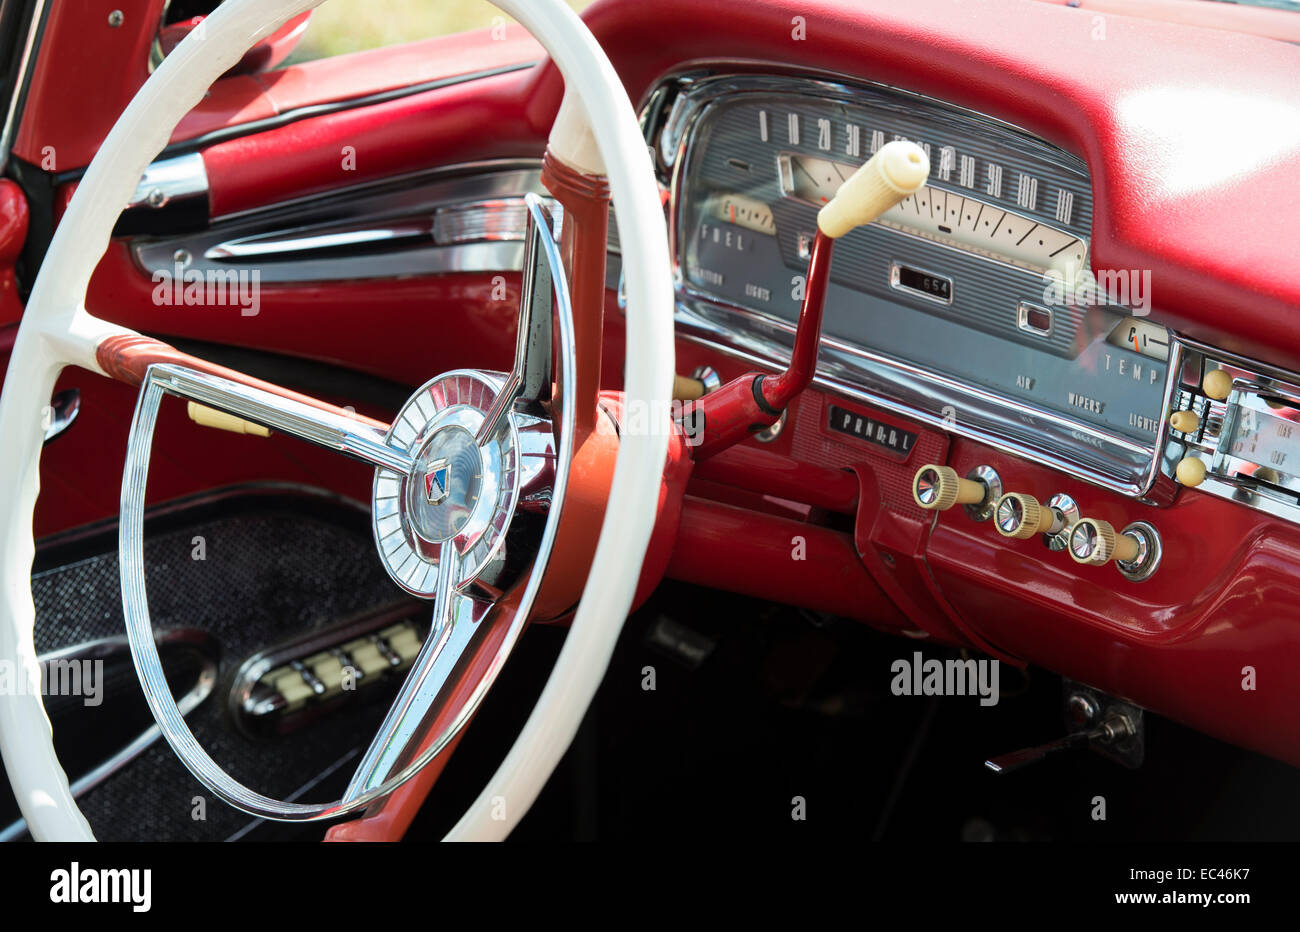 ford galaxie skyline interior detail 1950s american car stock photo 76310395 alamy. Black Bedroom Furniture Sets. Home Design Ideas